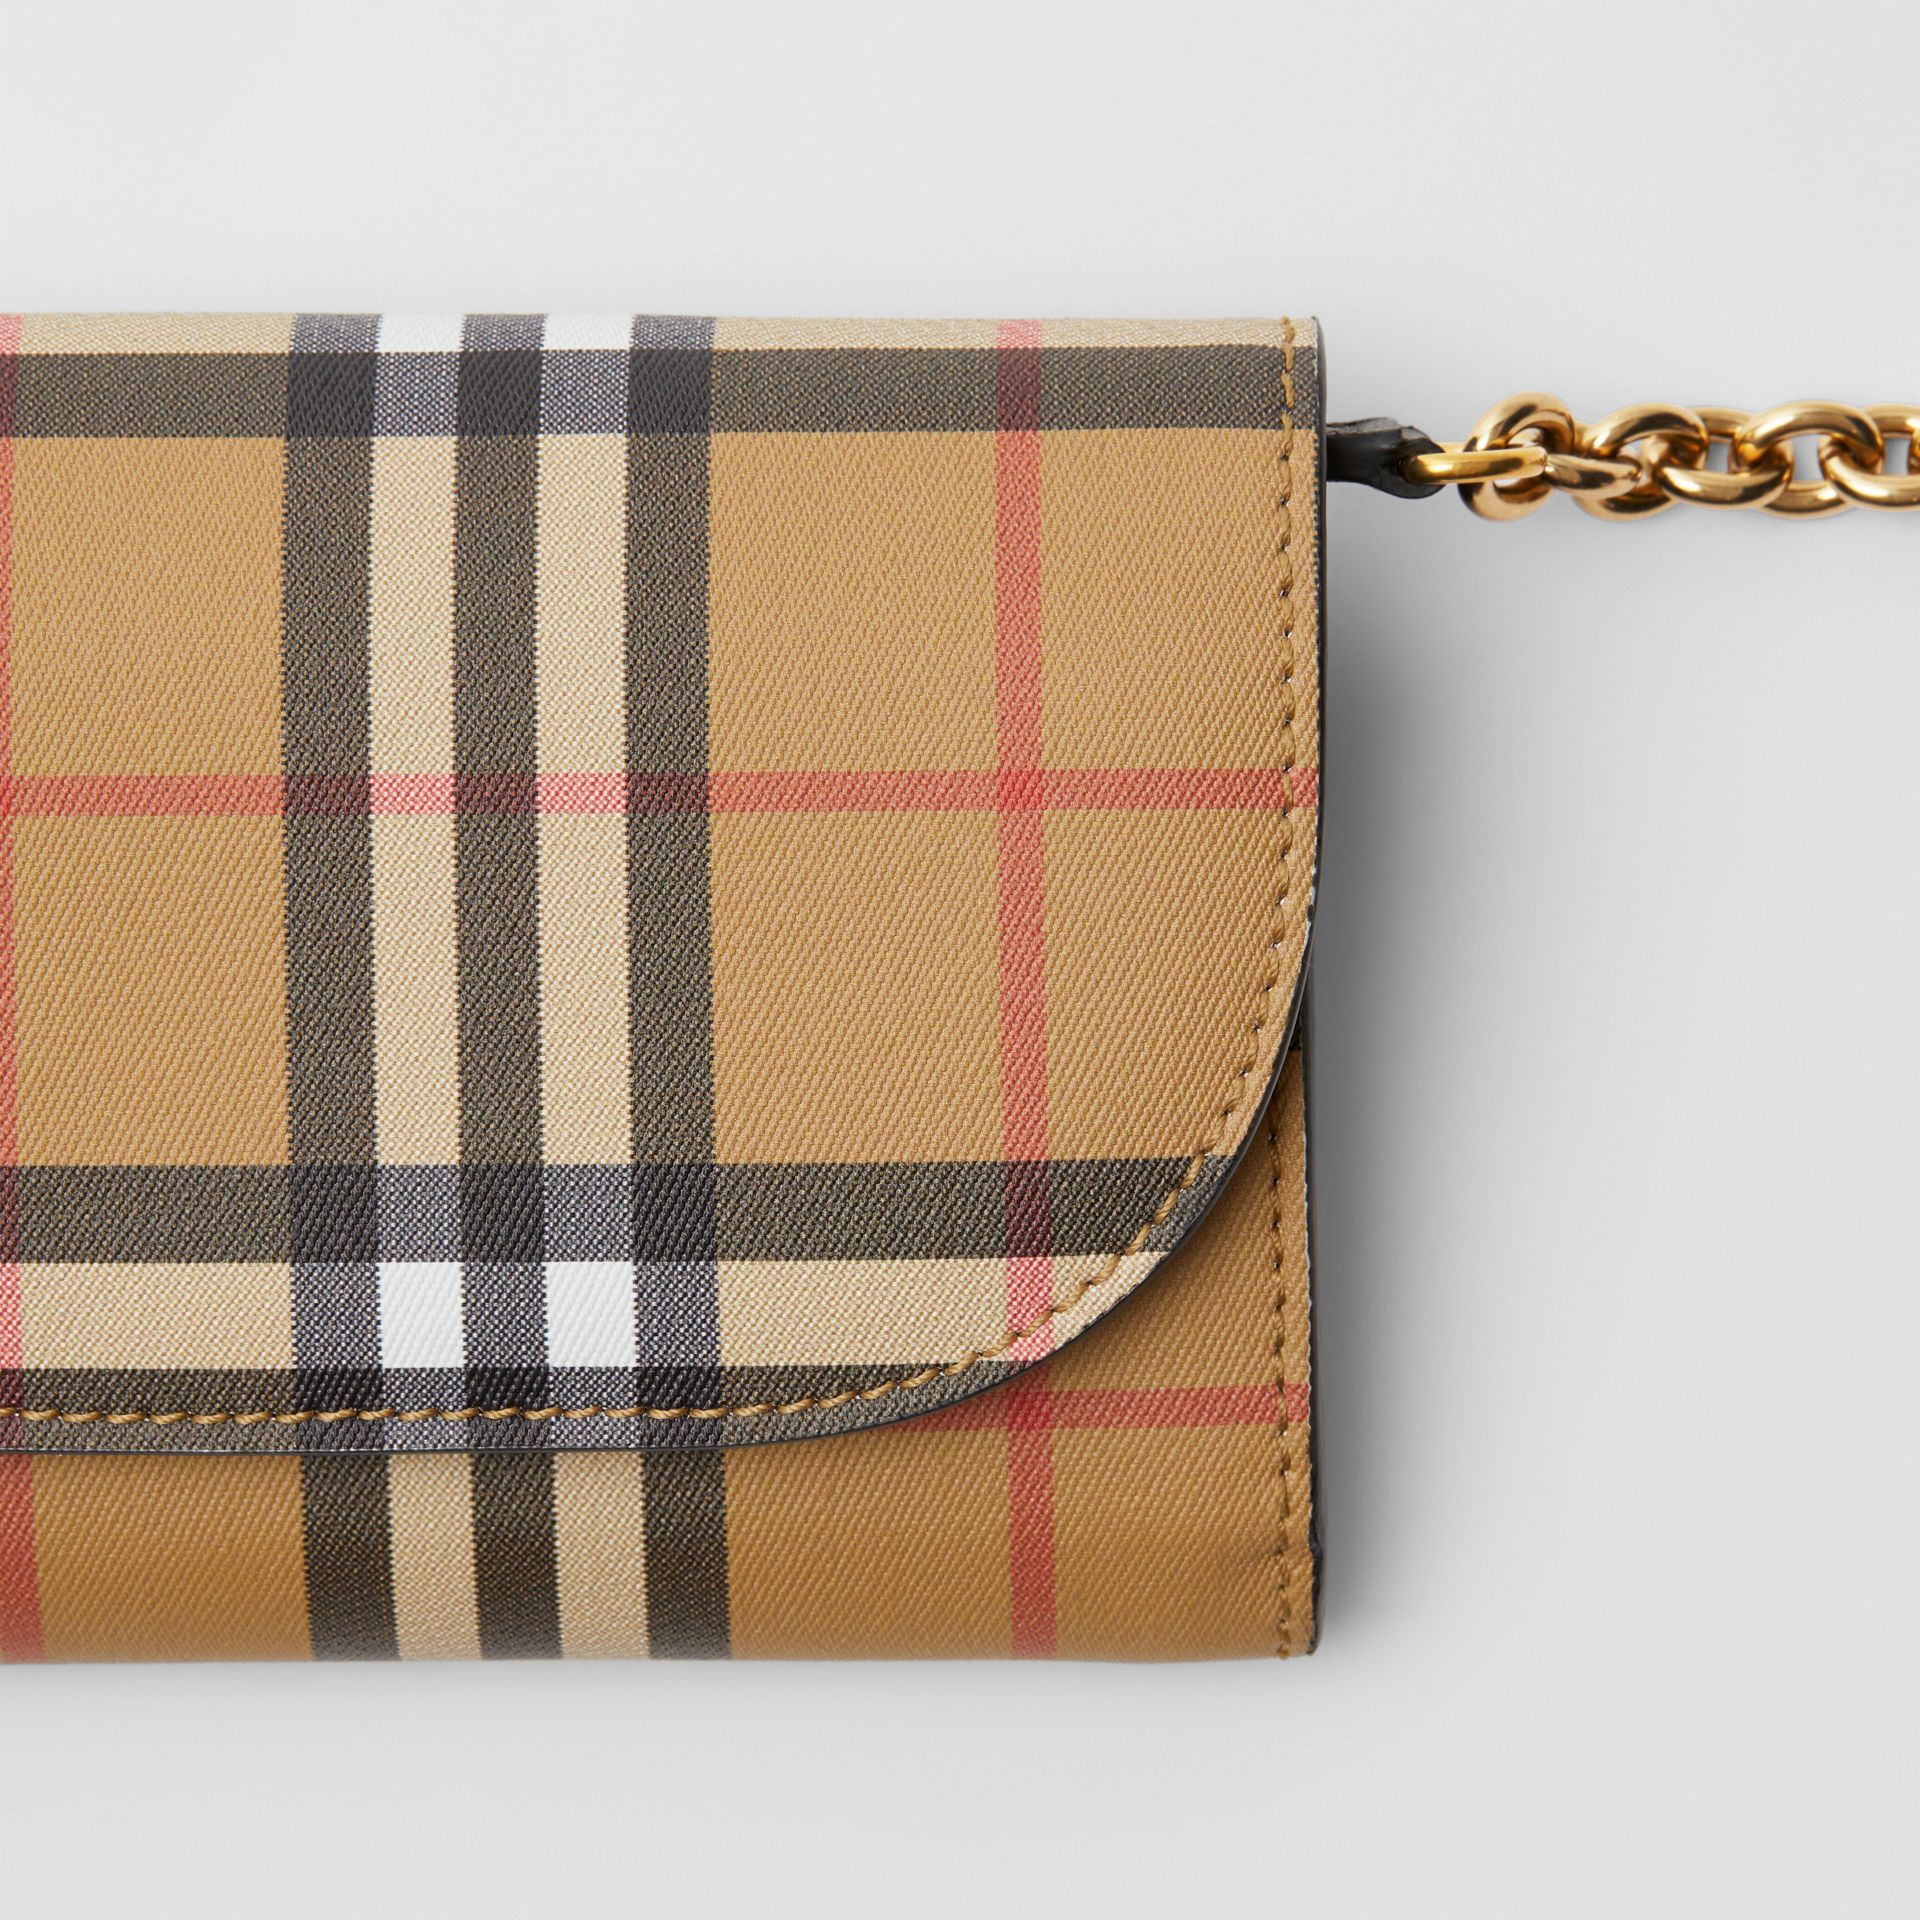 Vintage Check and Leather Wallet with Chain in Black - Women | Burberry - gallery image 1